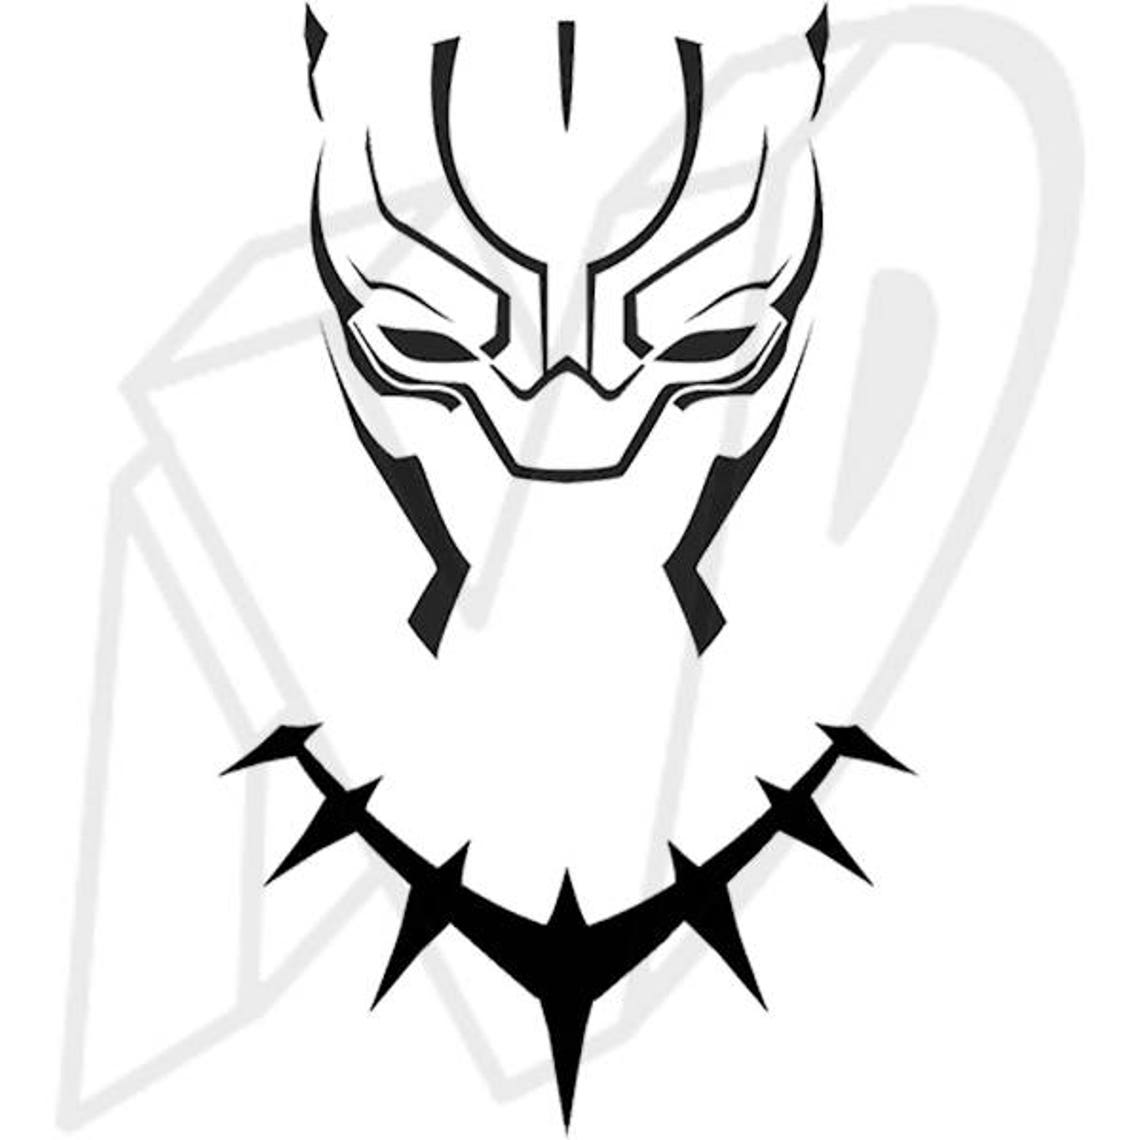 Black panther mask decal black panther decal wakanda forever black panther marvel decaltchalla black panther stickers